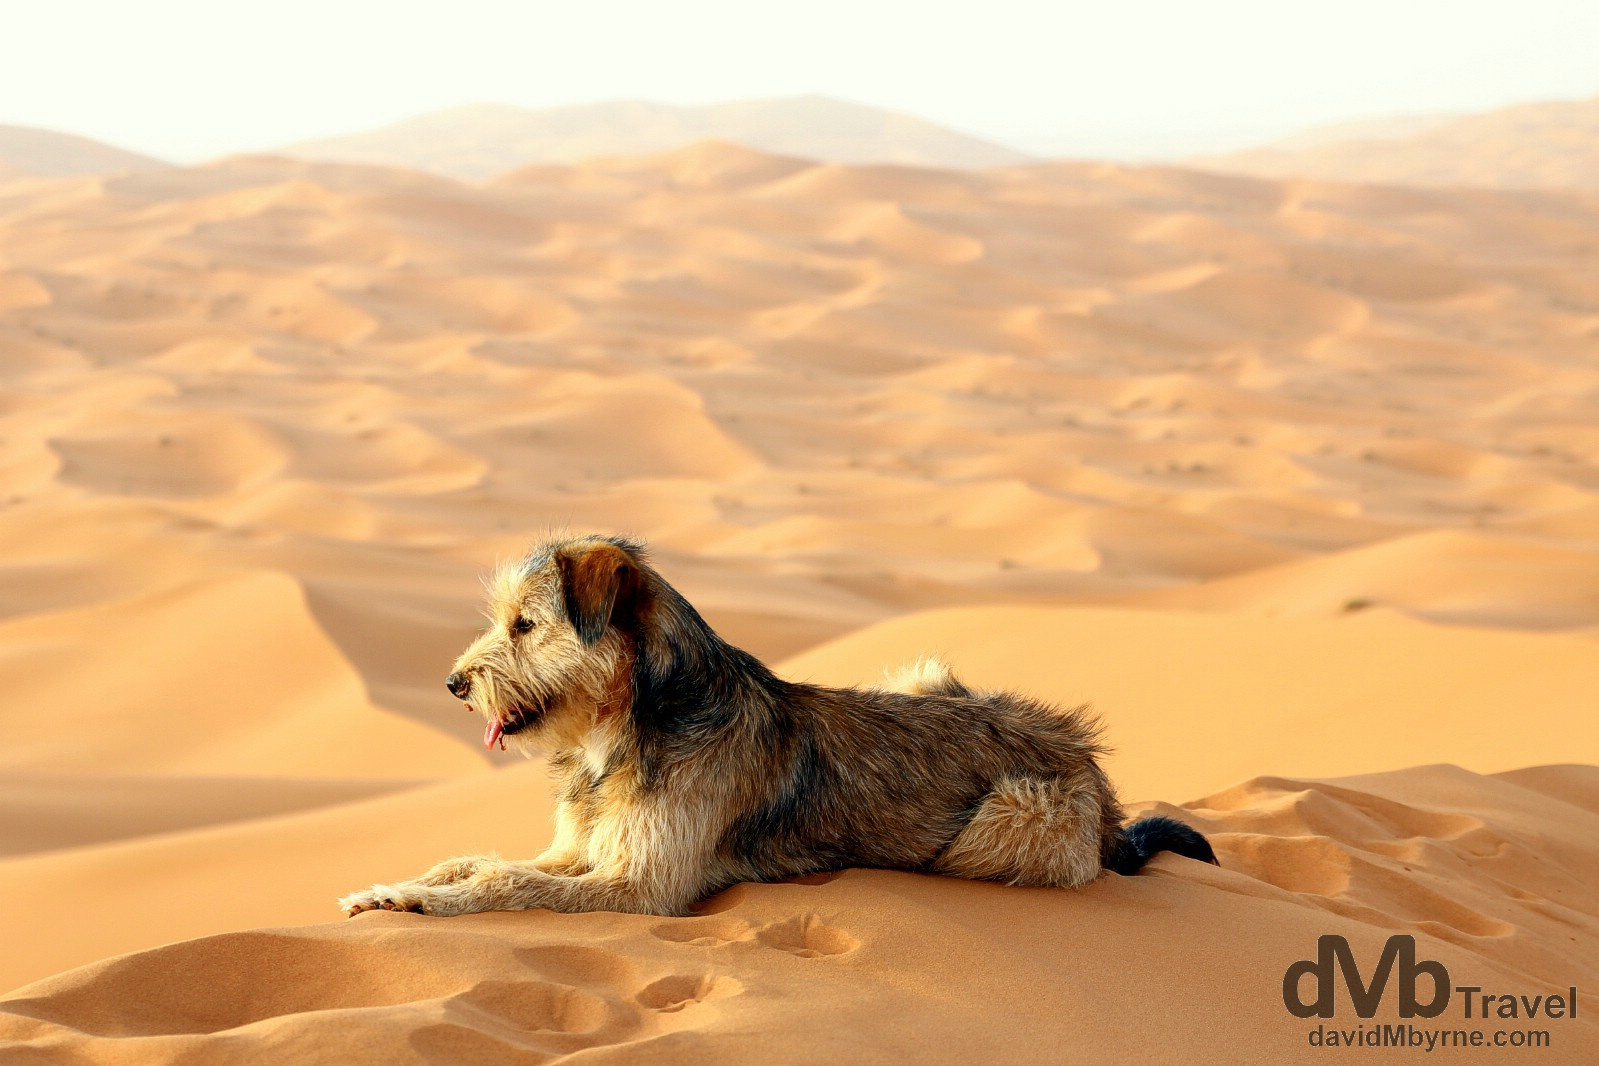 A shaggy dog resting on top of a massive sand dune in the desert of Erg Chebbi, Marzouga, Morocco. May 19th, 2014.